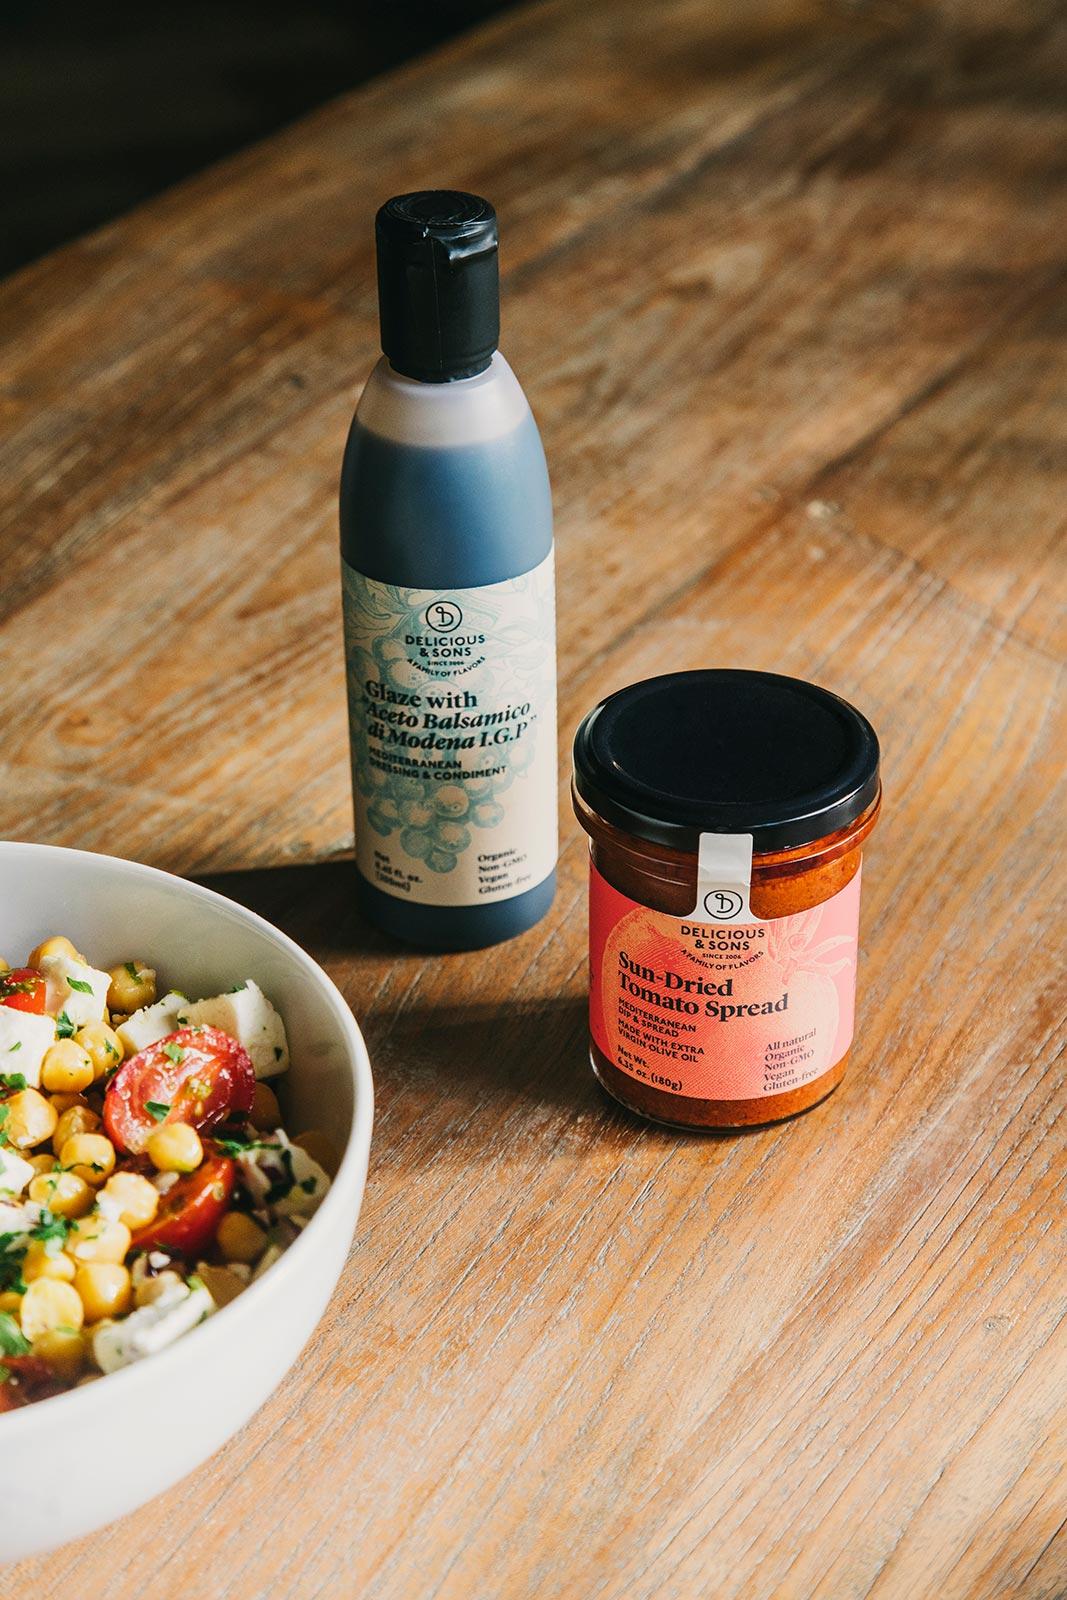 Greek style chickpea salad with sun-dried tomato — Delicious & Sons